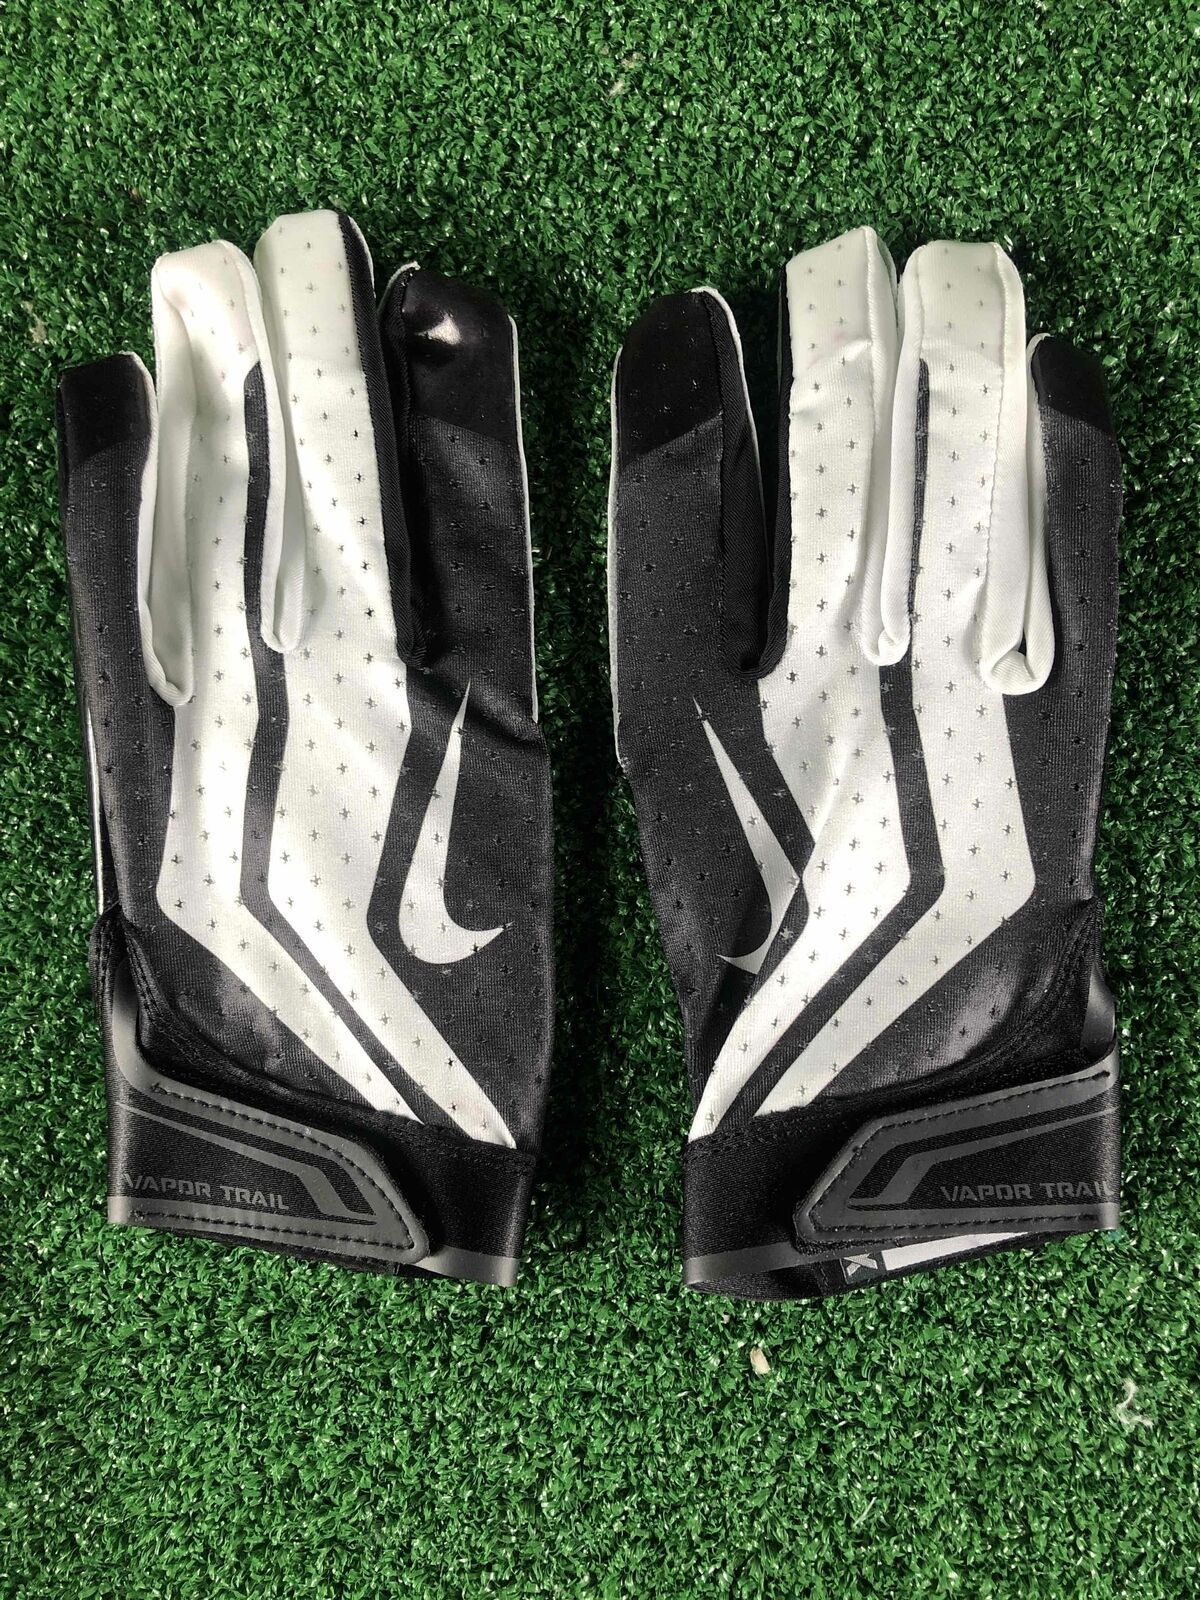 Primary image for Team Issued Baltimore Ravens Nike Vapor Trail 3.0 2xl Football Gloves